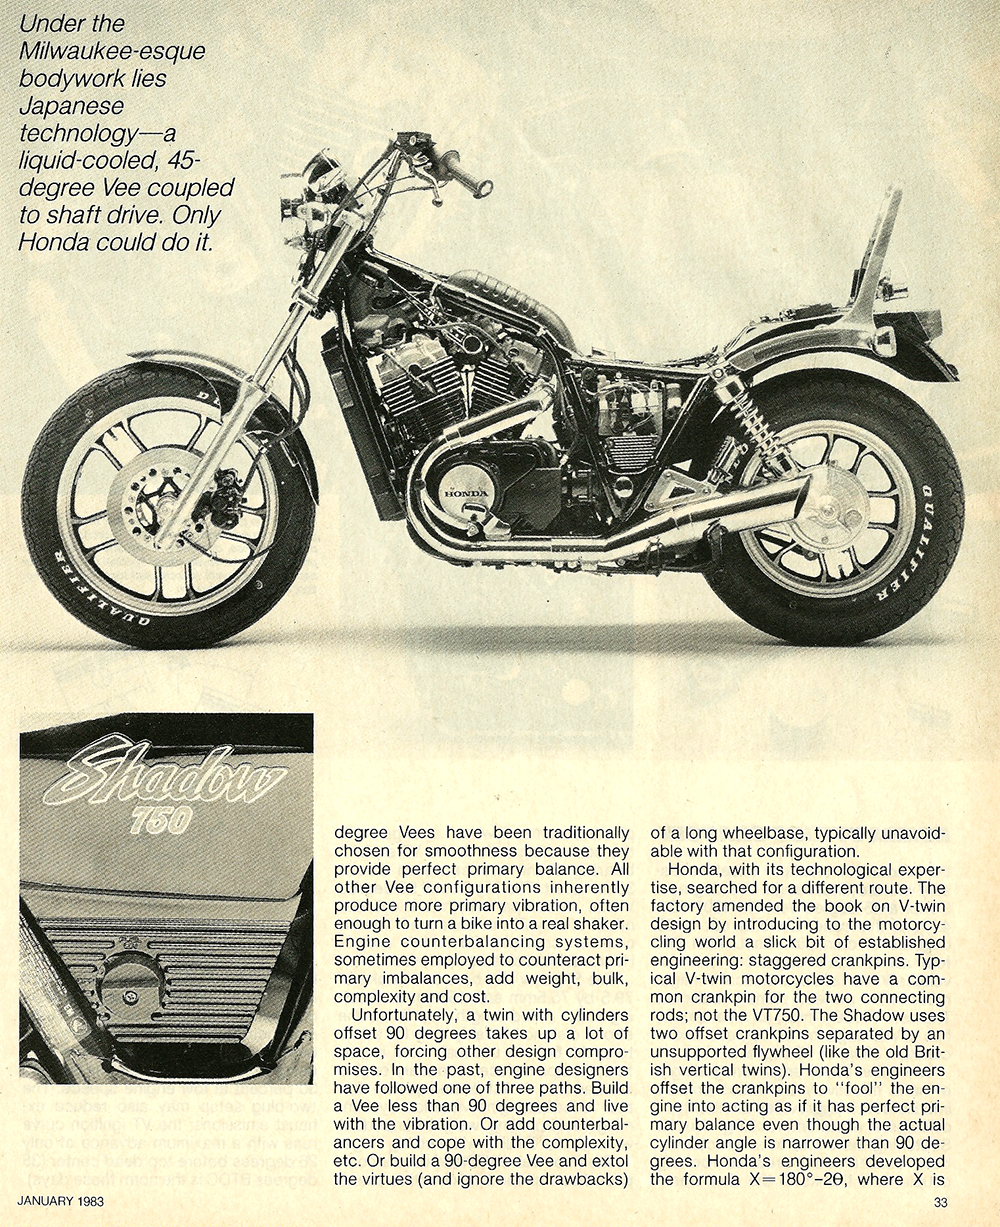 1983 Honda VT750C Shadow road test 4.jpg